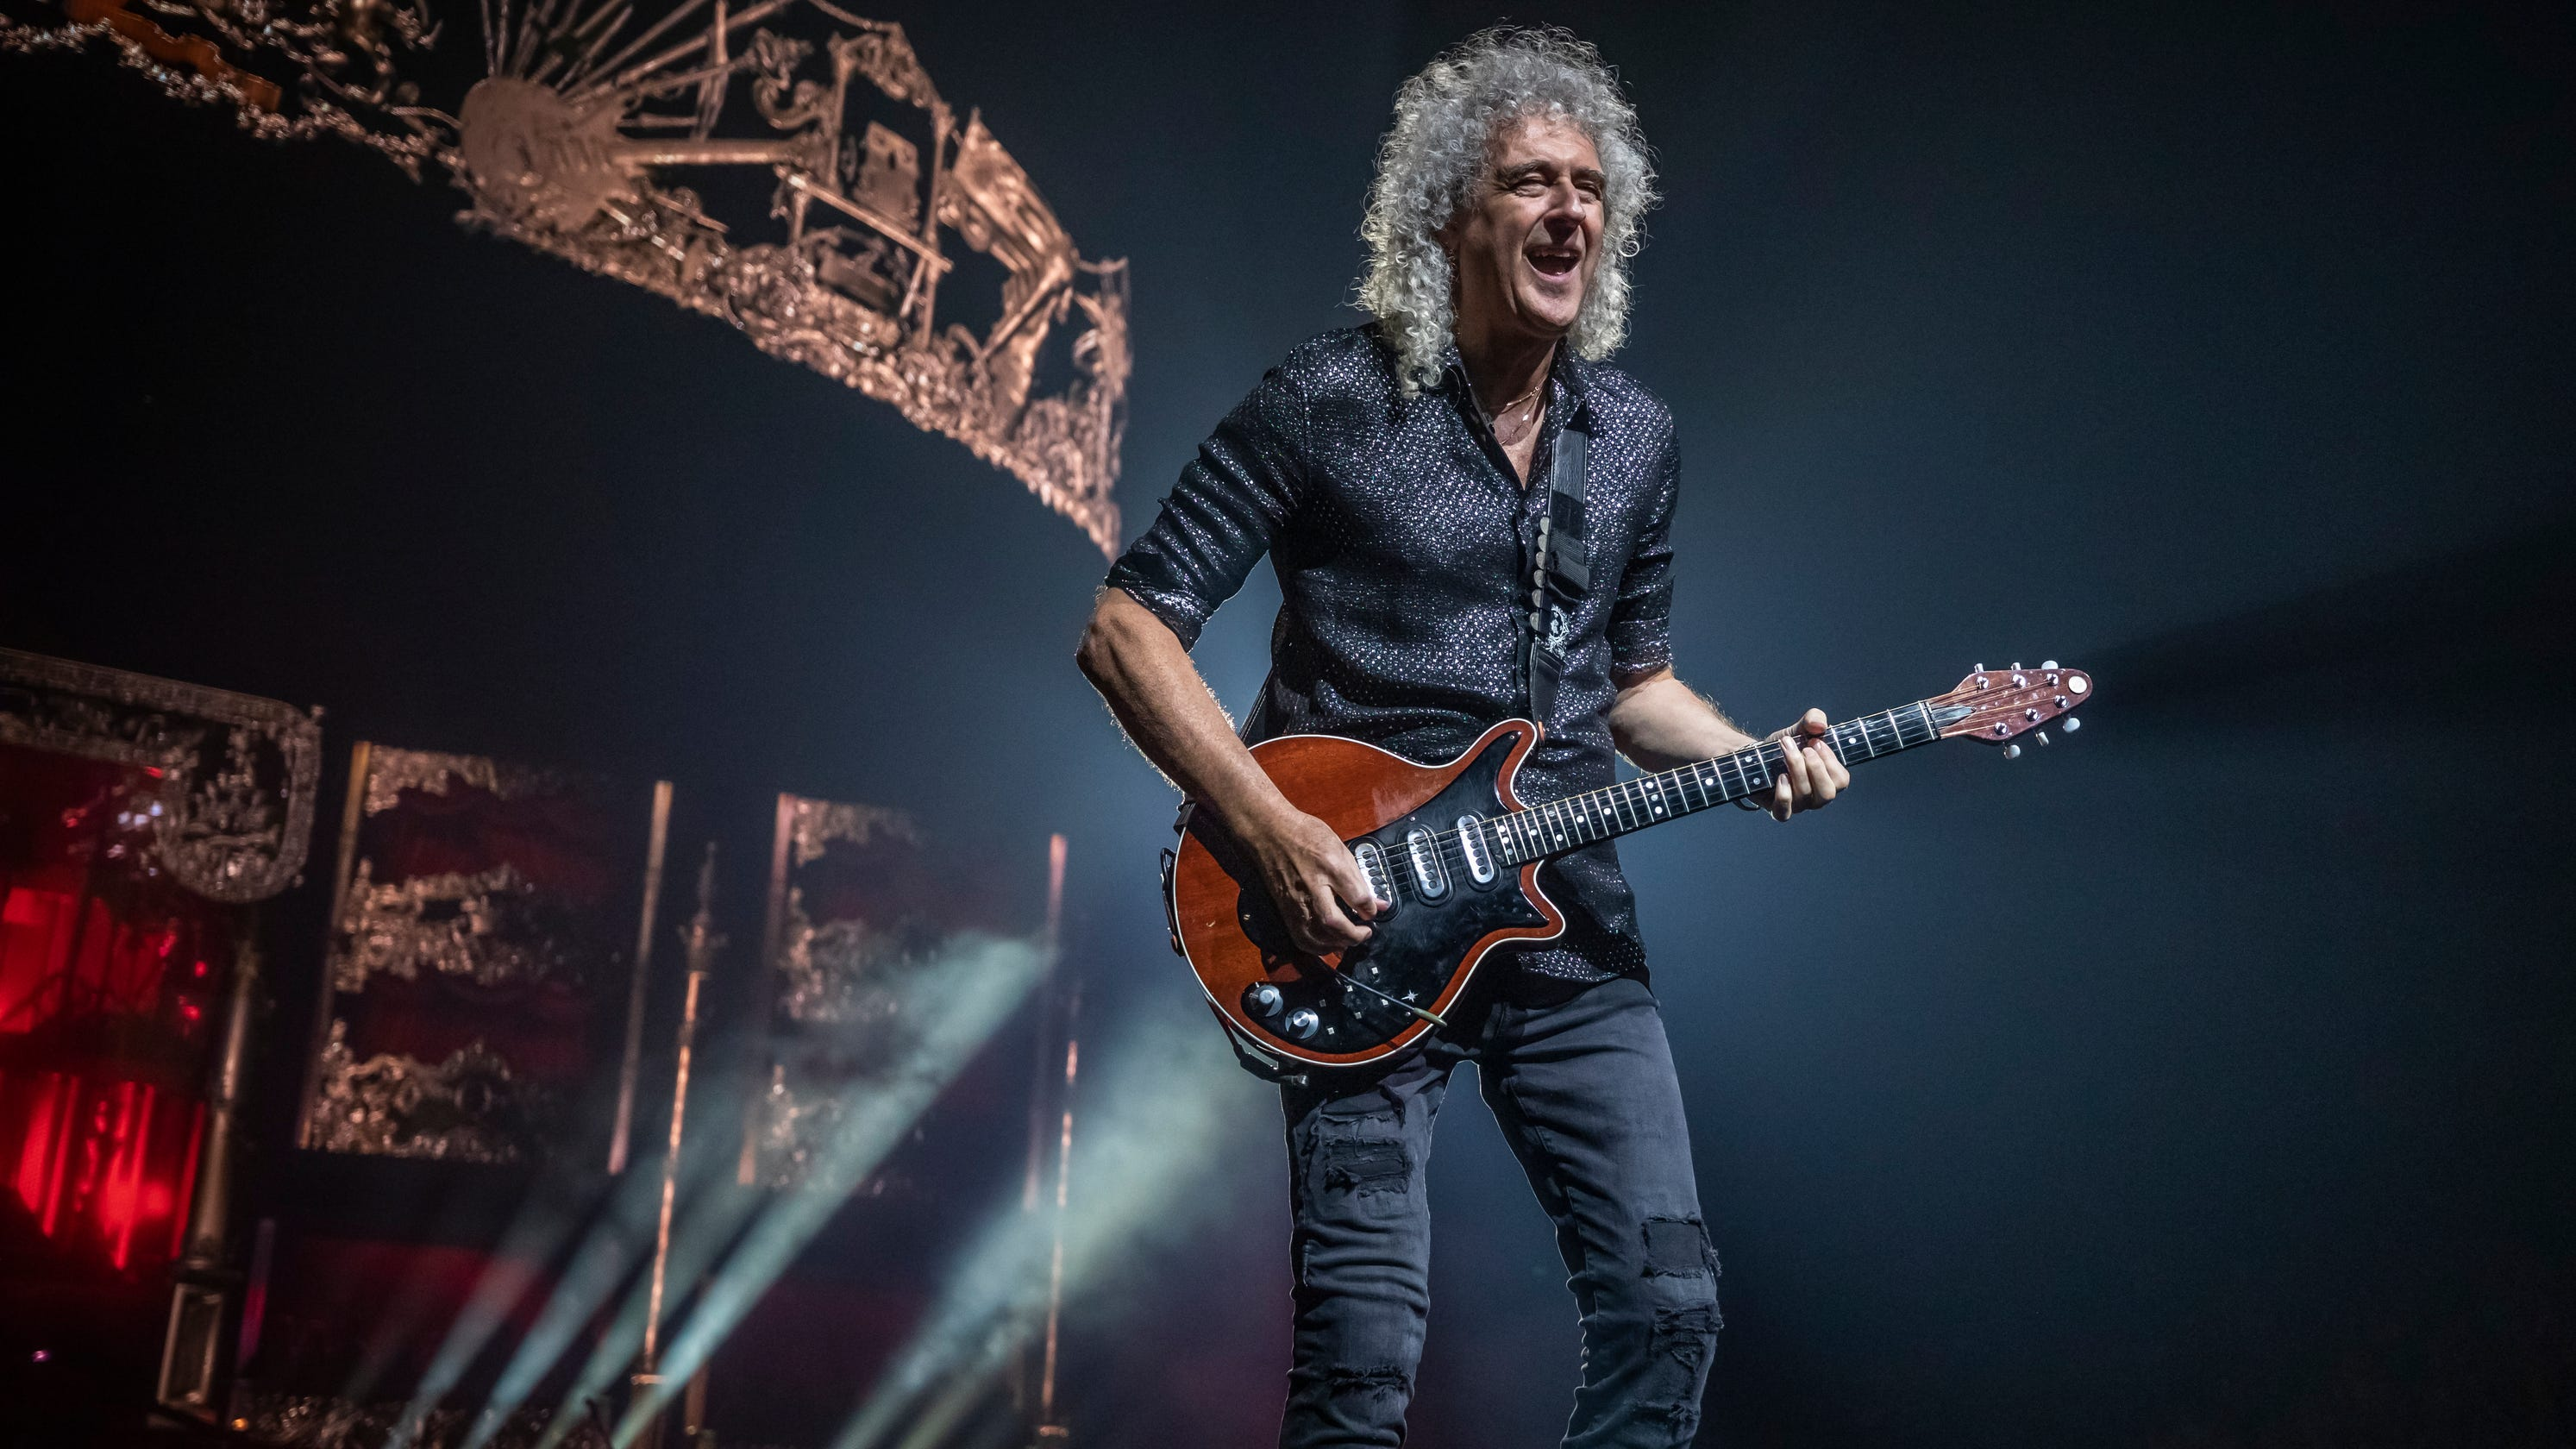 Queen (and Adam Lambert) are the champions at Nashville concert